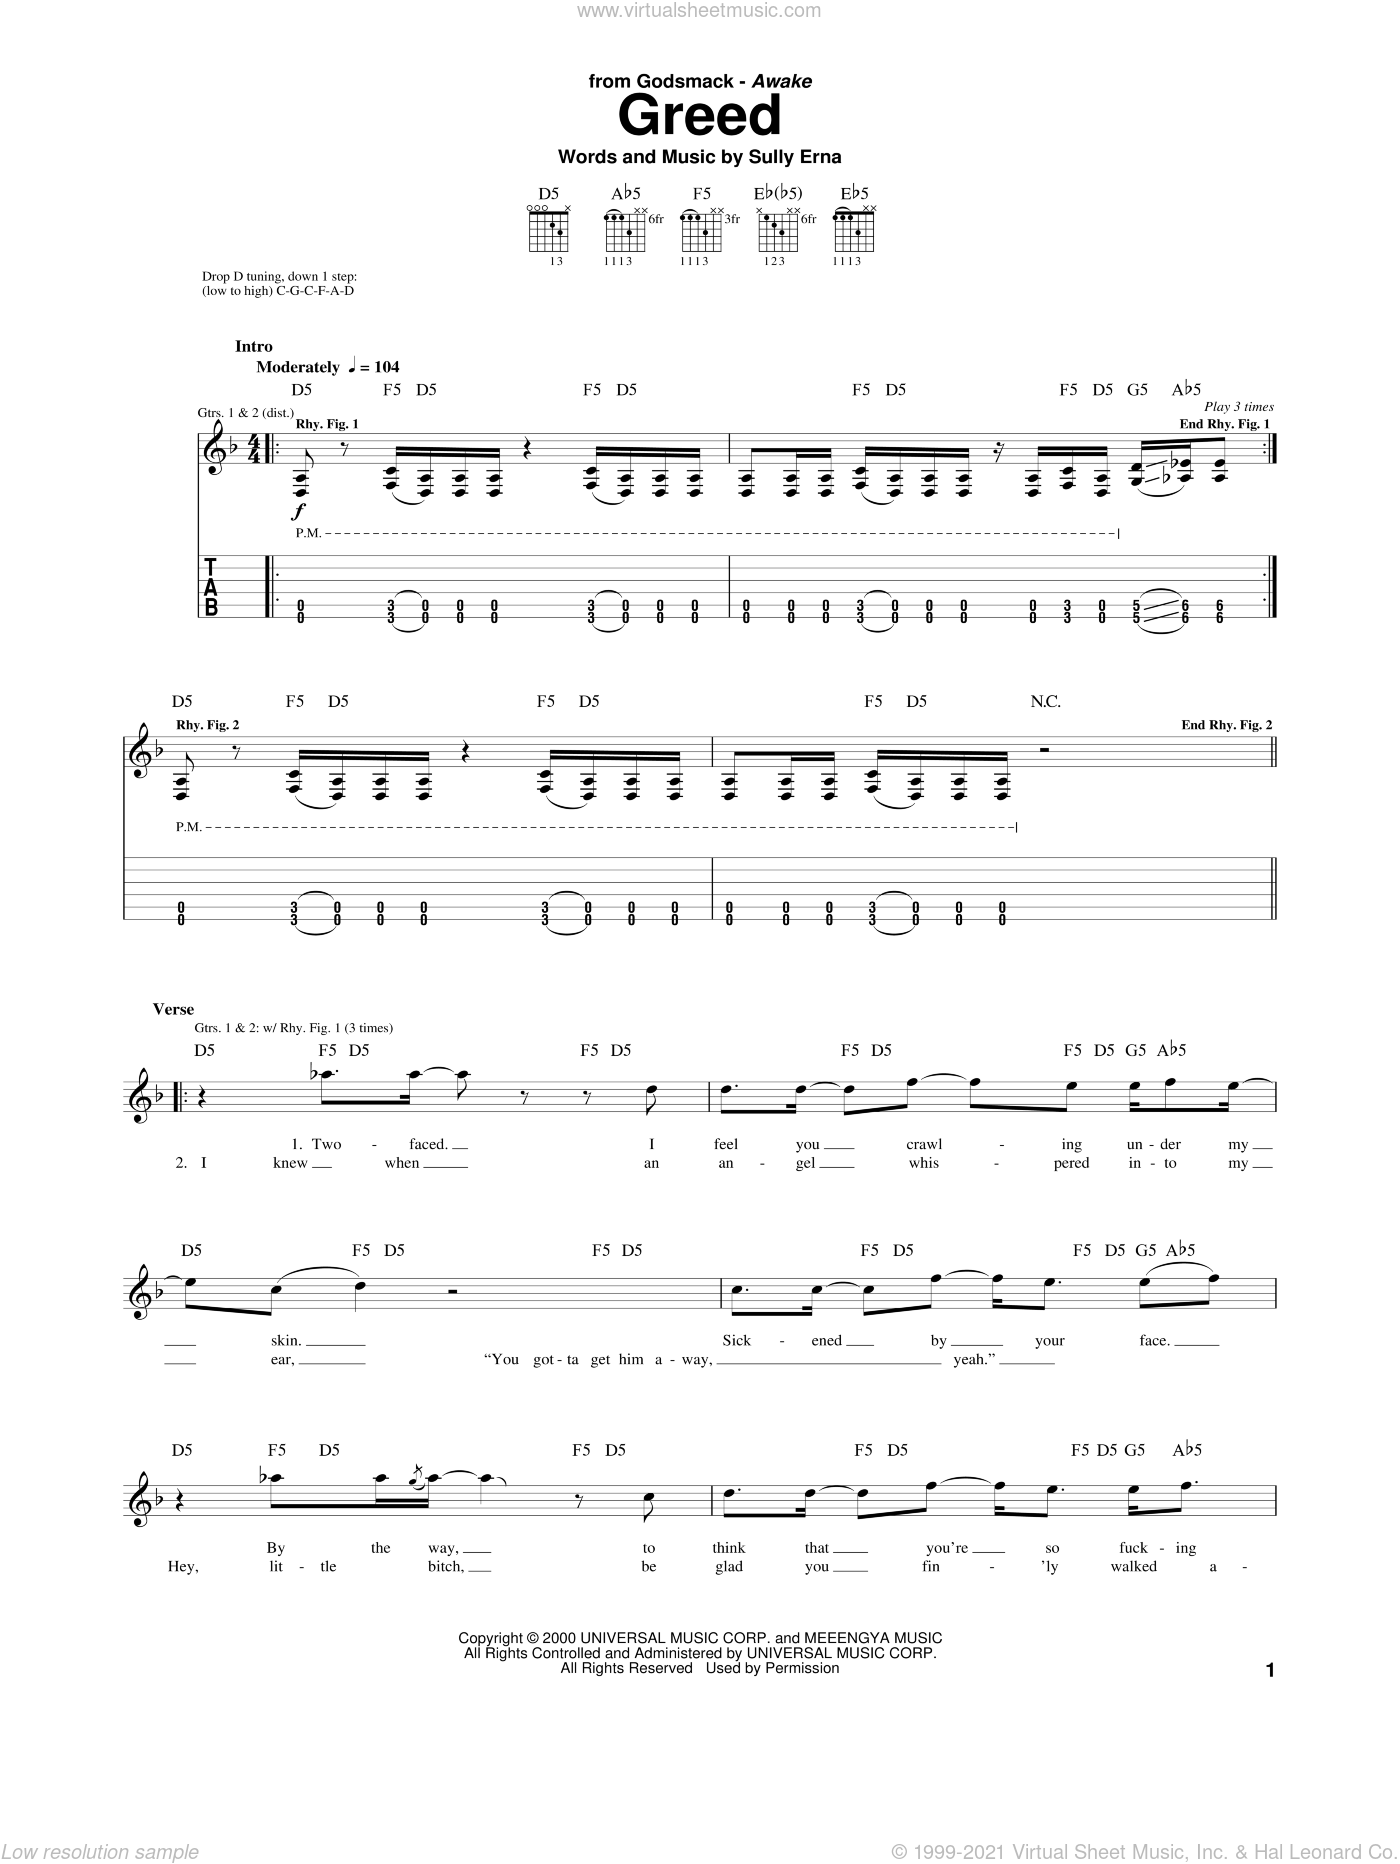 Greed sheet music for guitar (tablature) by Sully Erna